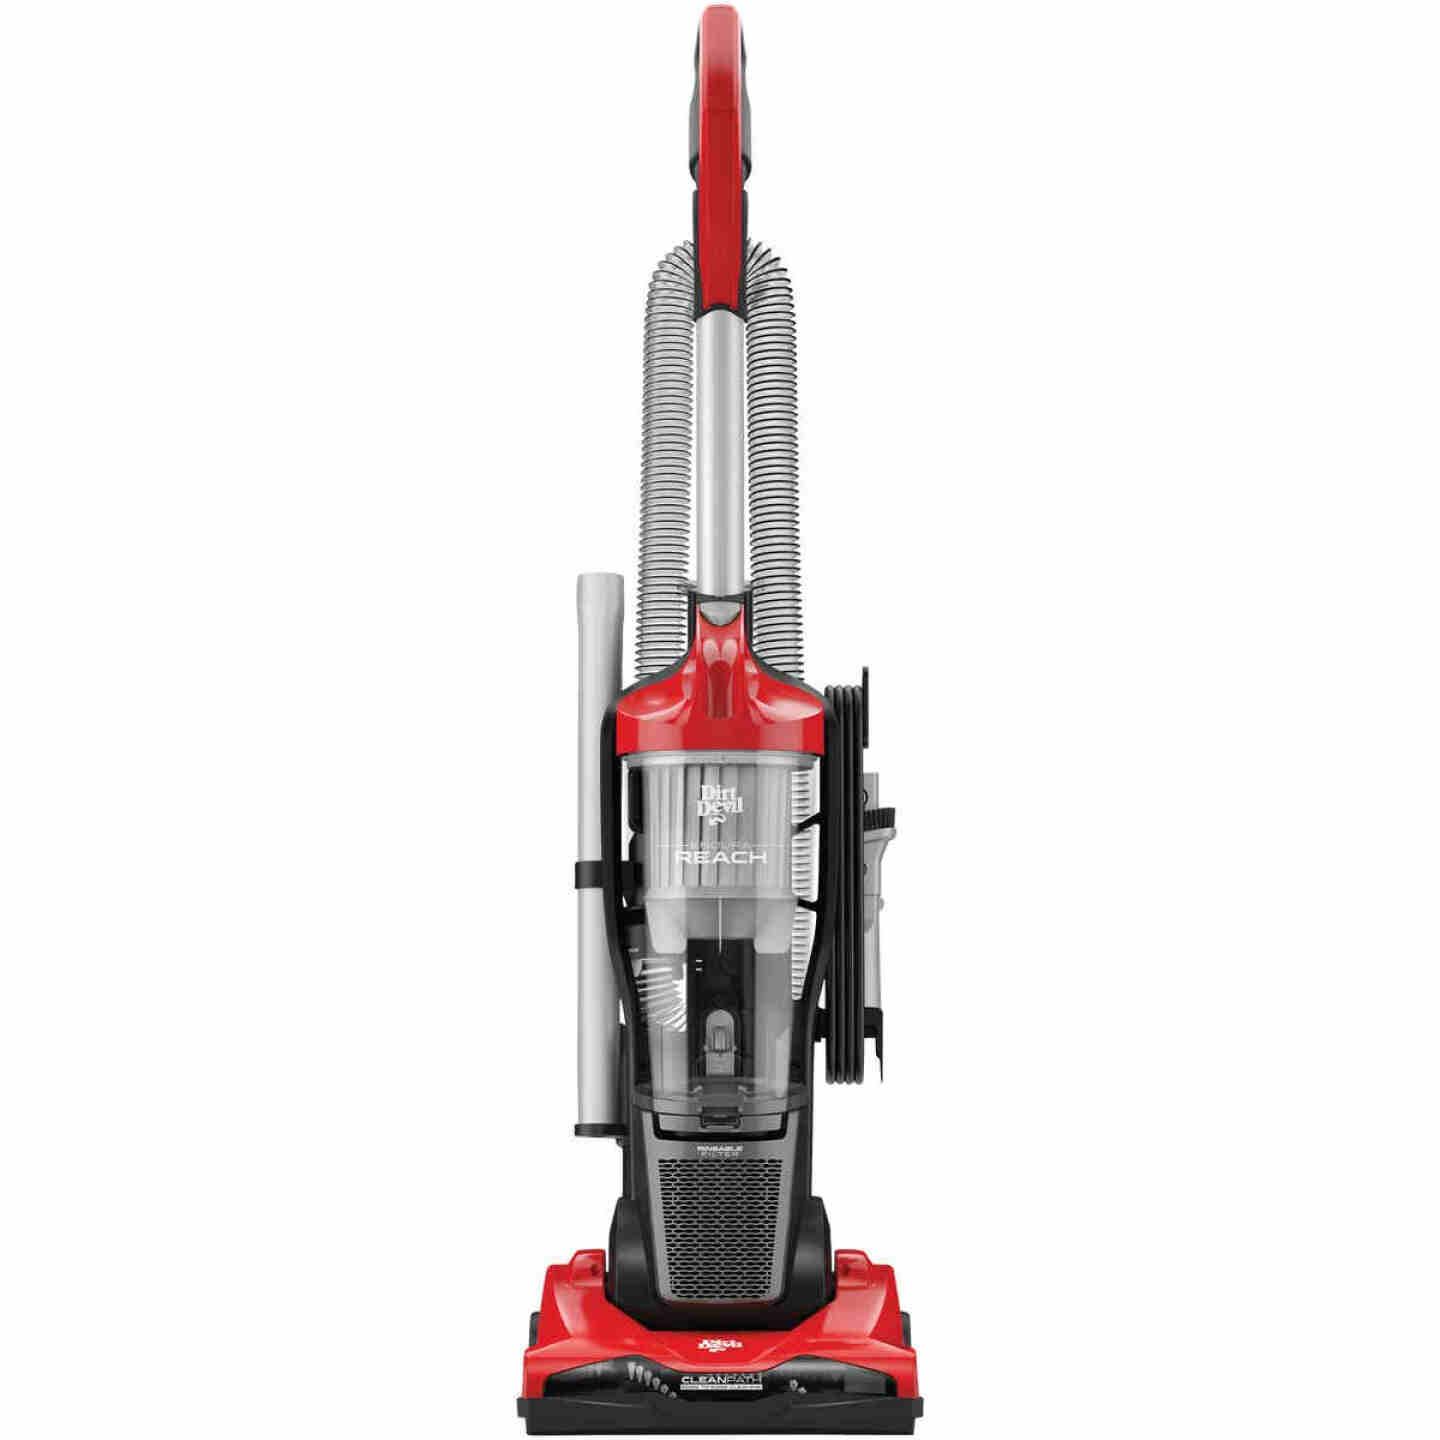 Dirt Devil Endura Reach Compact Upright Vacuum Image 1